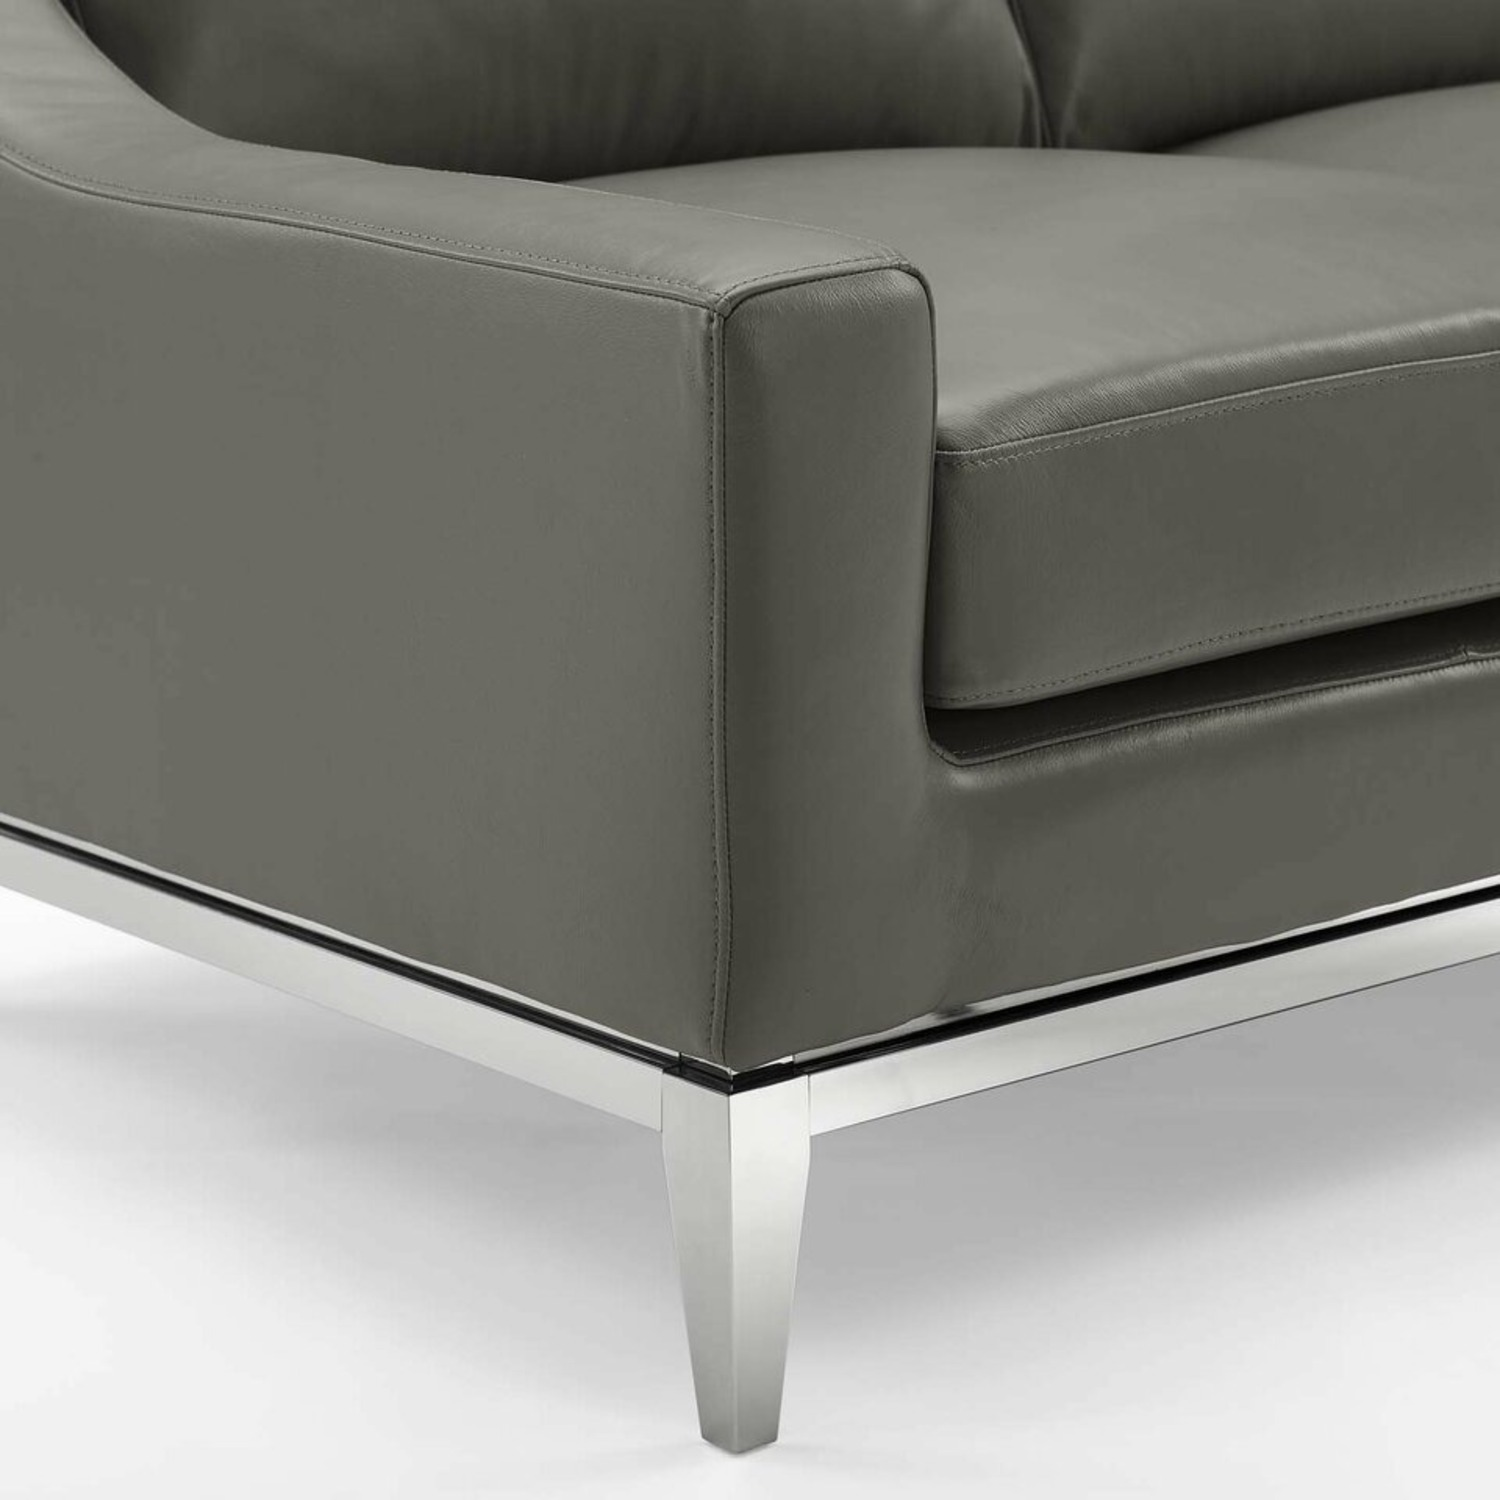 Loveseat In Gray Leather W/ Stainless Steel Base - image-2